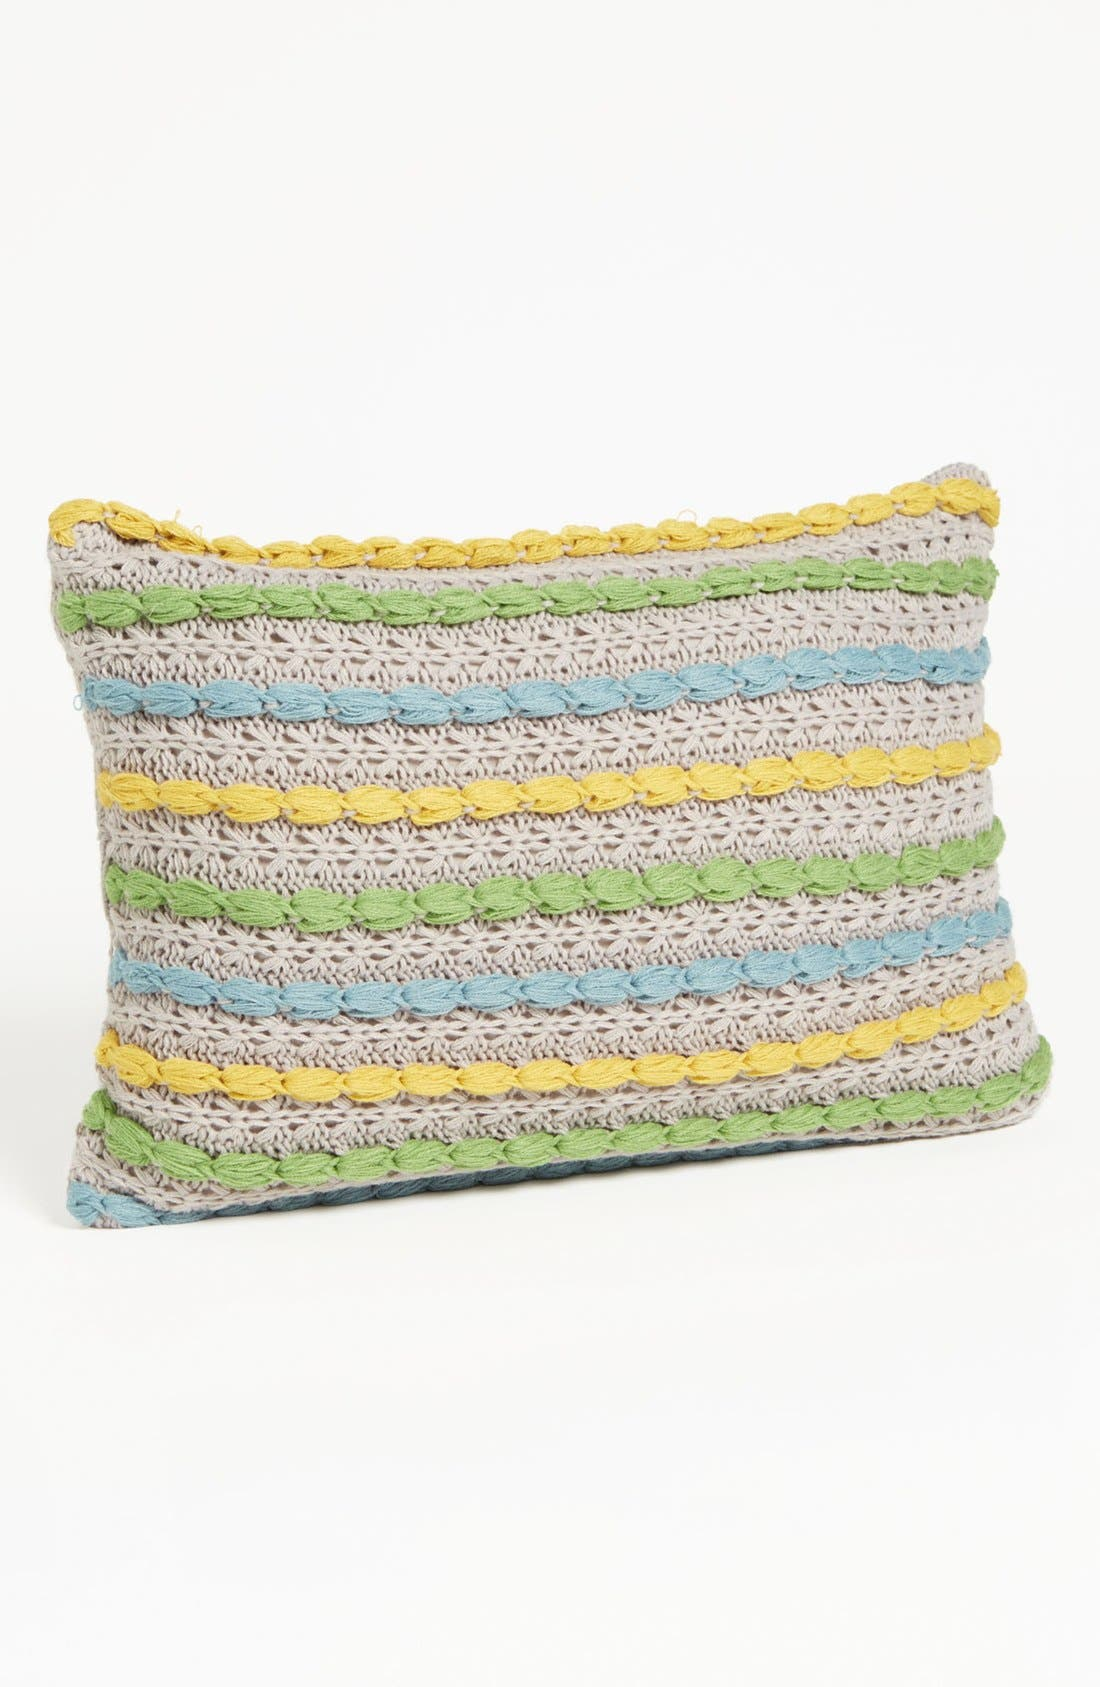 Alternate Image 1 Selected - Nordstrom at Home 'Salon' Knit Pillow